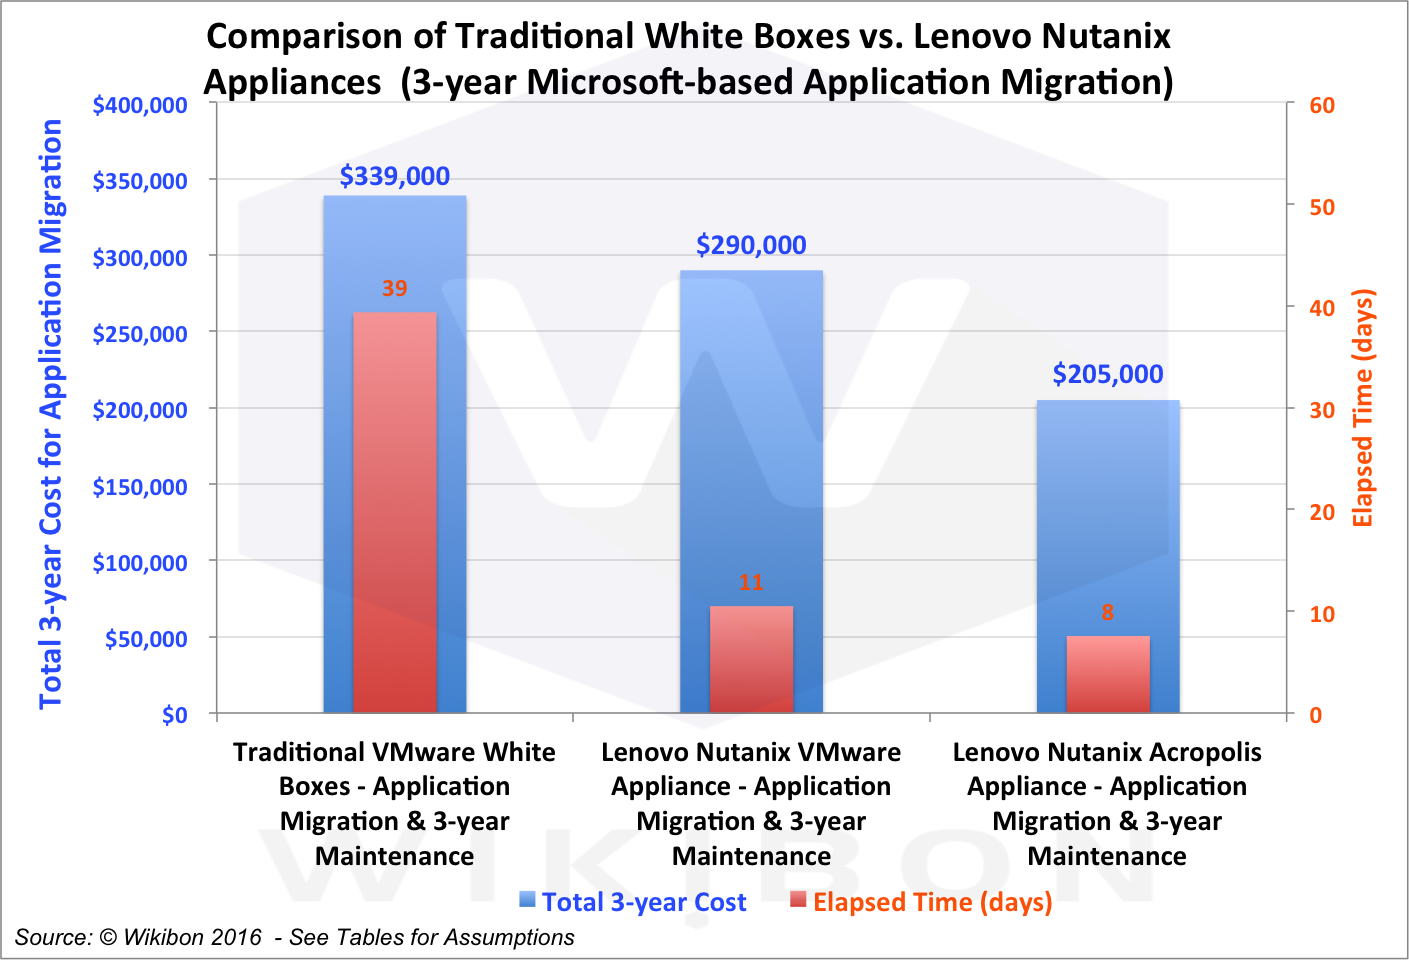 Figure 2 - Executive Summary of 3-year cost of Traditional VMware White Box, Lenovo/Nutanix with VMware and Lenovo/Nutanix with Acropolis Source: © Wikibon 2016See Table 3 in Footnotes for detailed assumptions